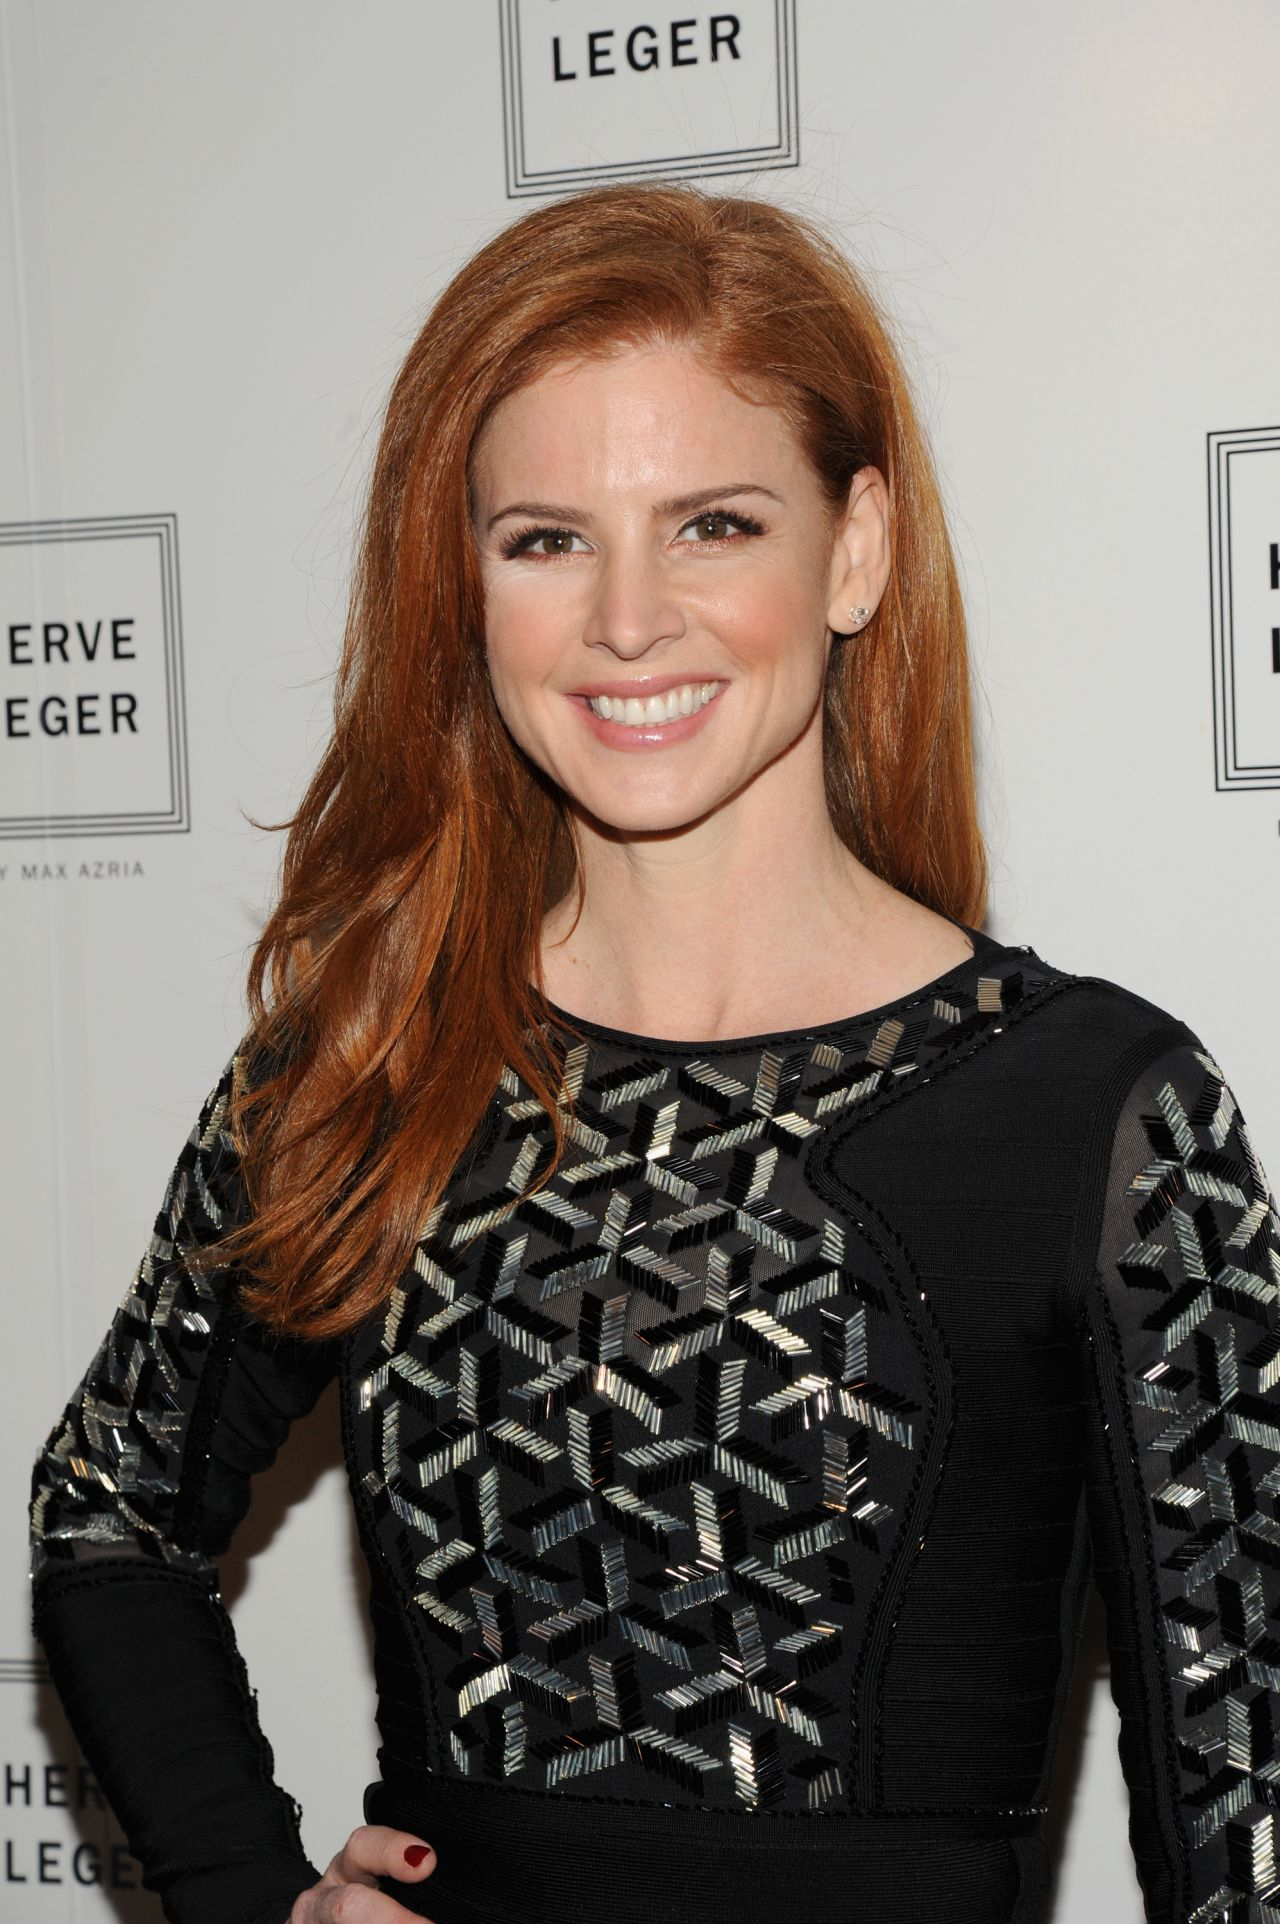 Sarah Rafferty - Herve Leger By Max Azria 2014 Fashion Show in New York City